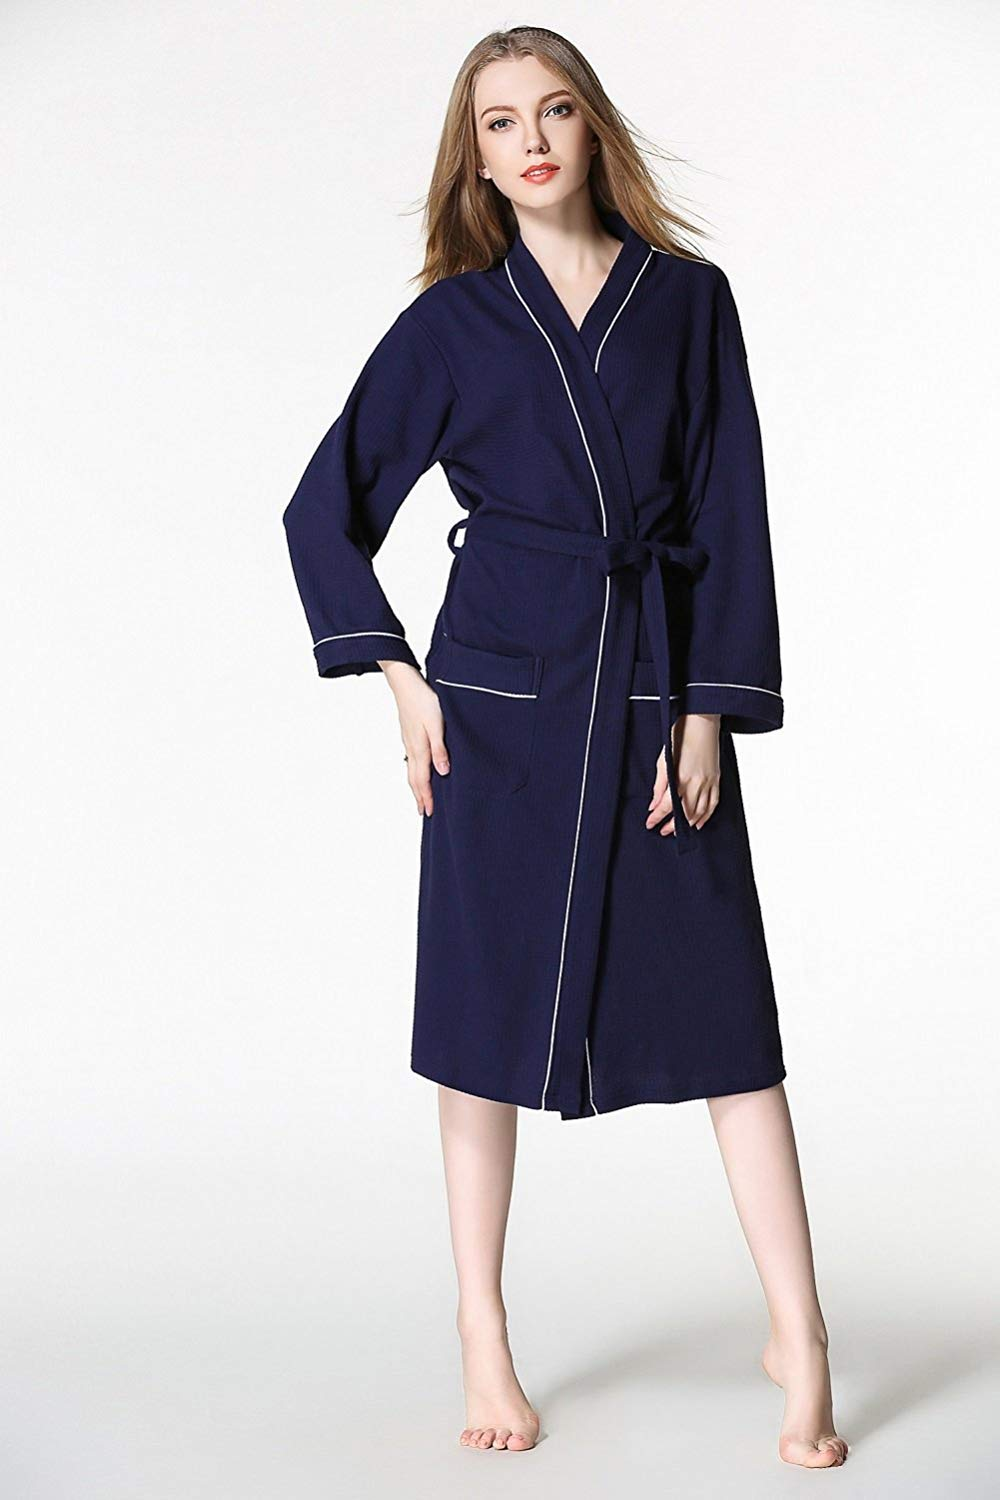 ce8e474955 Get Quotations · ALJL Lovers bathrobes soft cotton bathrobe hot spring gowns  knitted cotton comfortable breathable Navy blue bathrobes